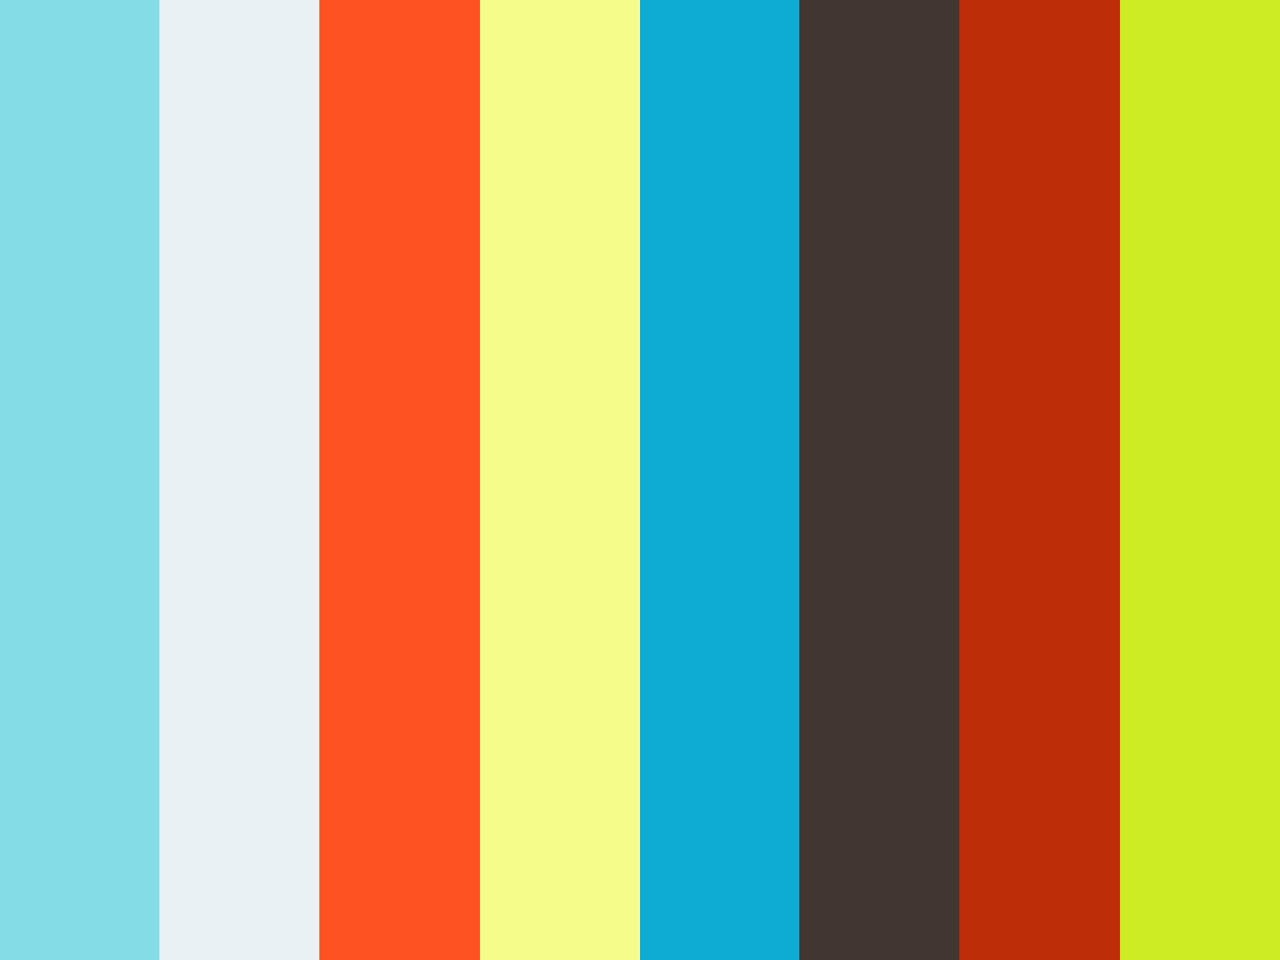 a study of regulation z truth in lending Regulation z, also known as tila or the truth in lending act, is an important financial regulation car dealers must be aware of tila requires that all lenders explain the terms of loans in a format that consumers can easily understand, and which can be easily compared to other offers.